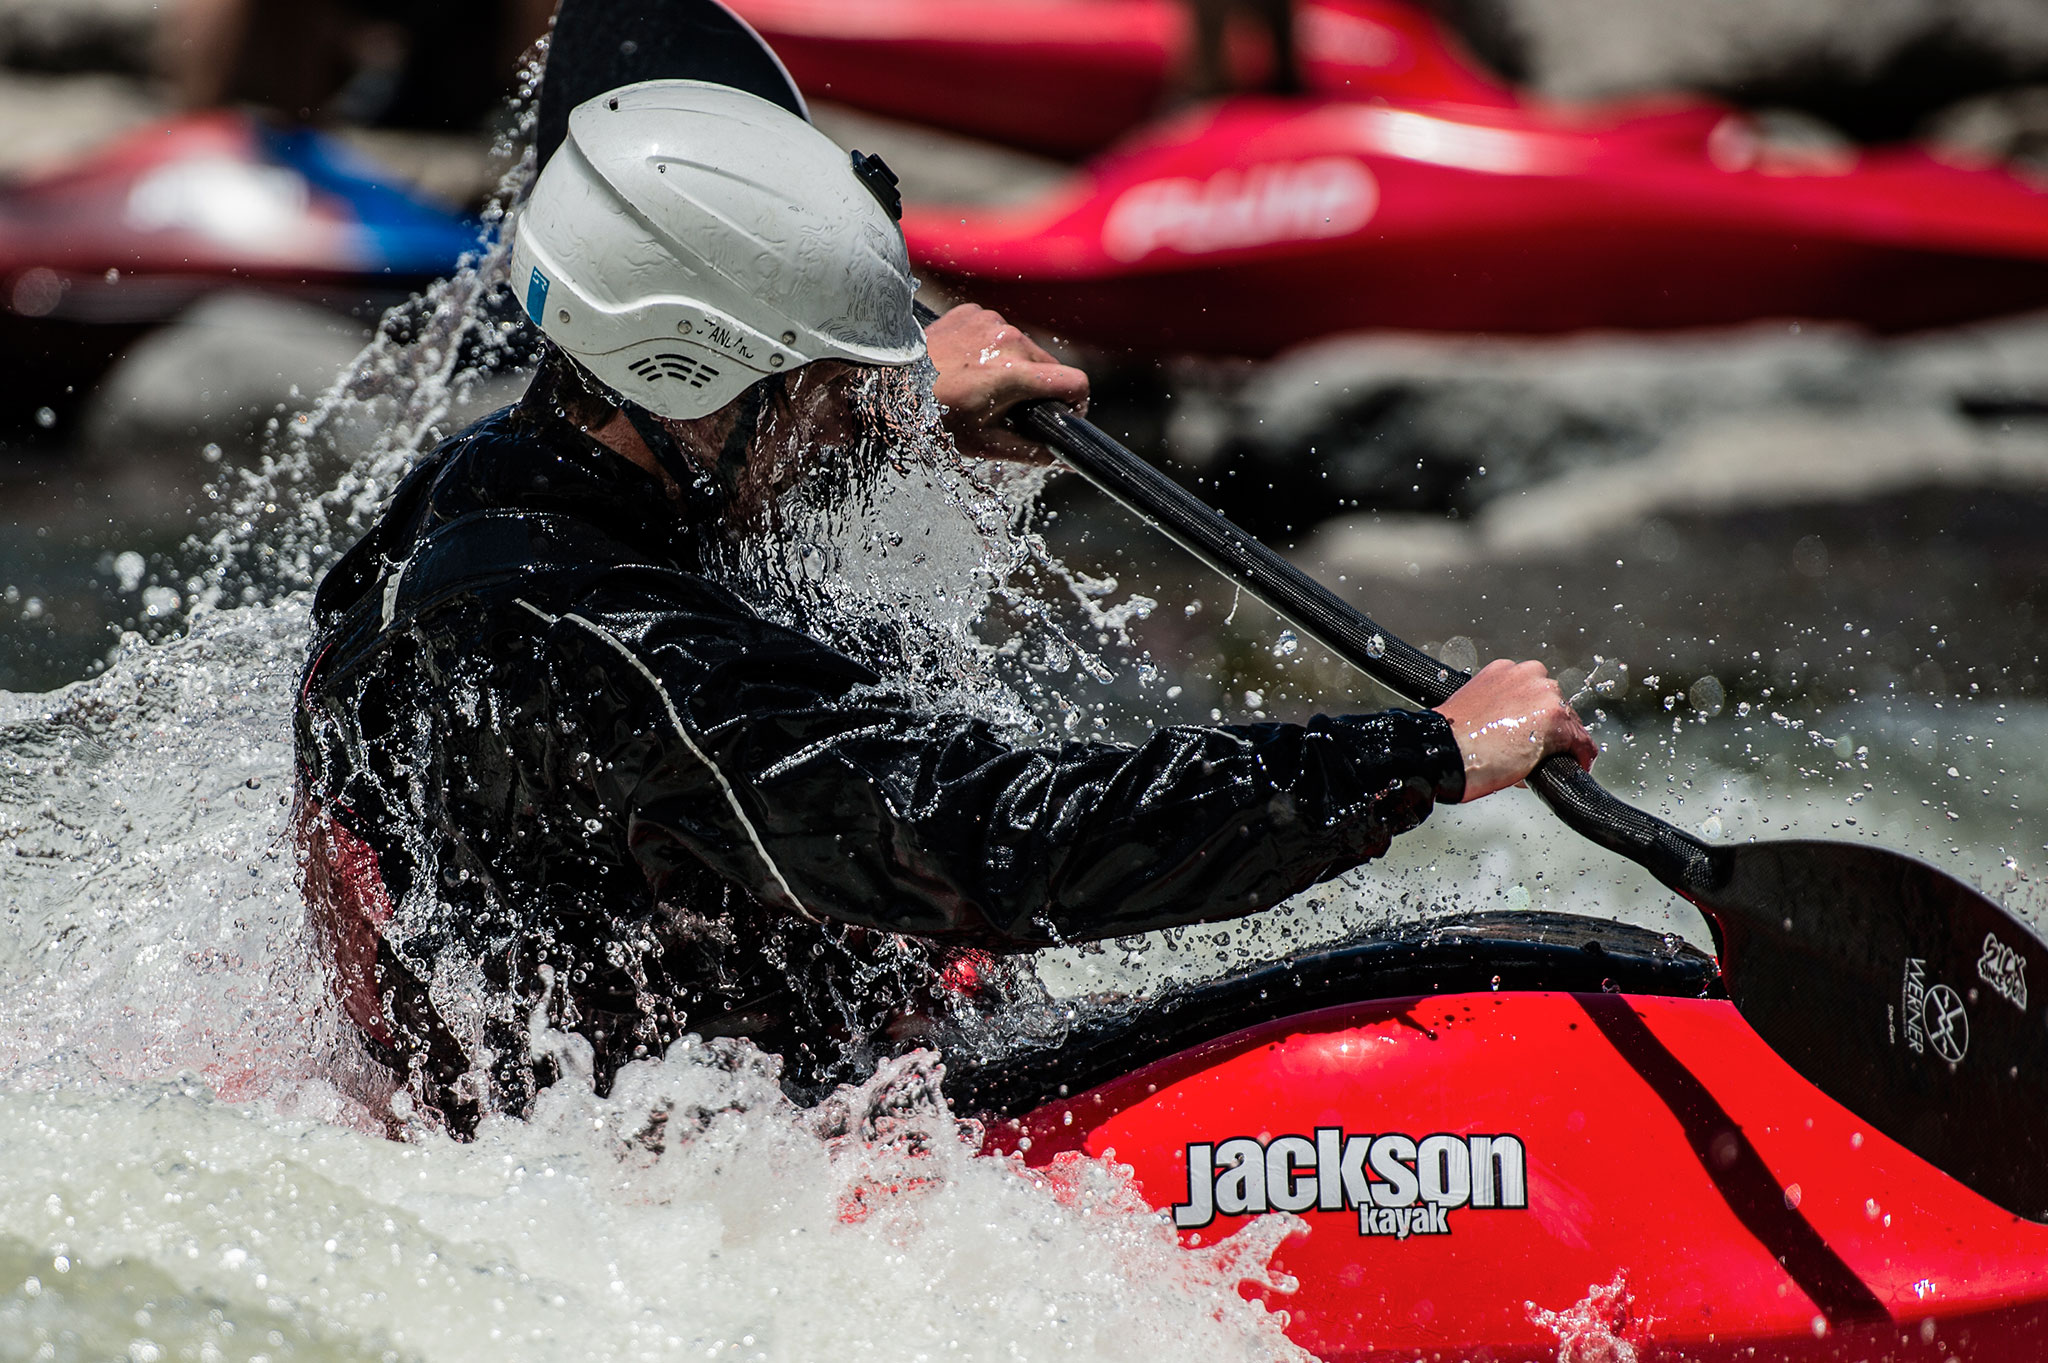 A kayaker emerges from under the water in the San Juan river in southern Colorado